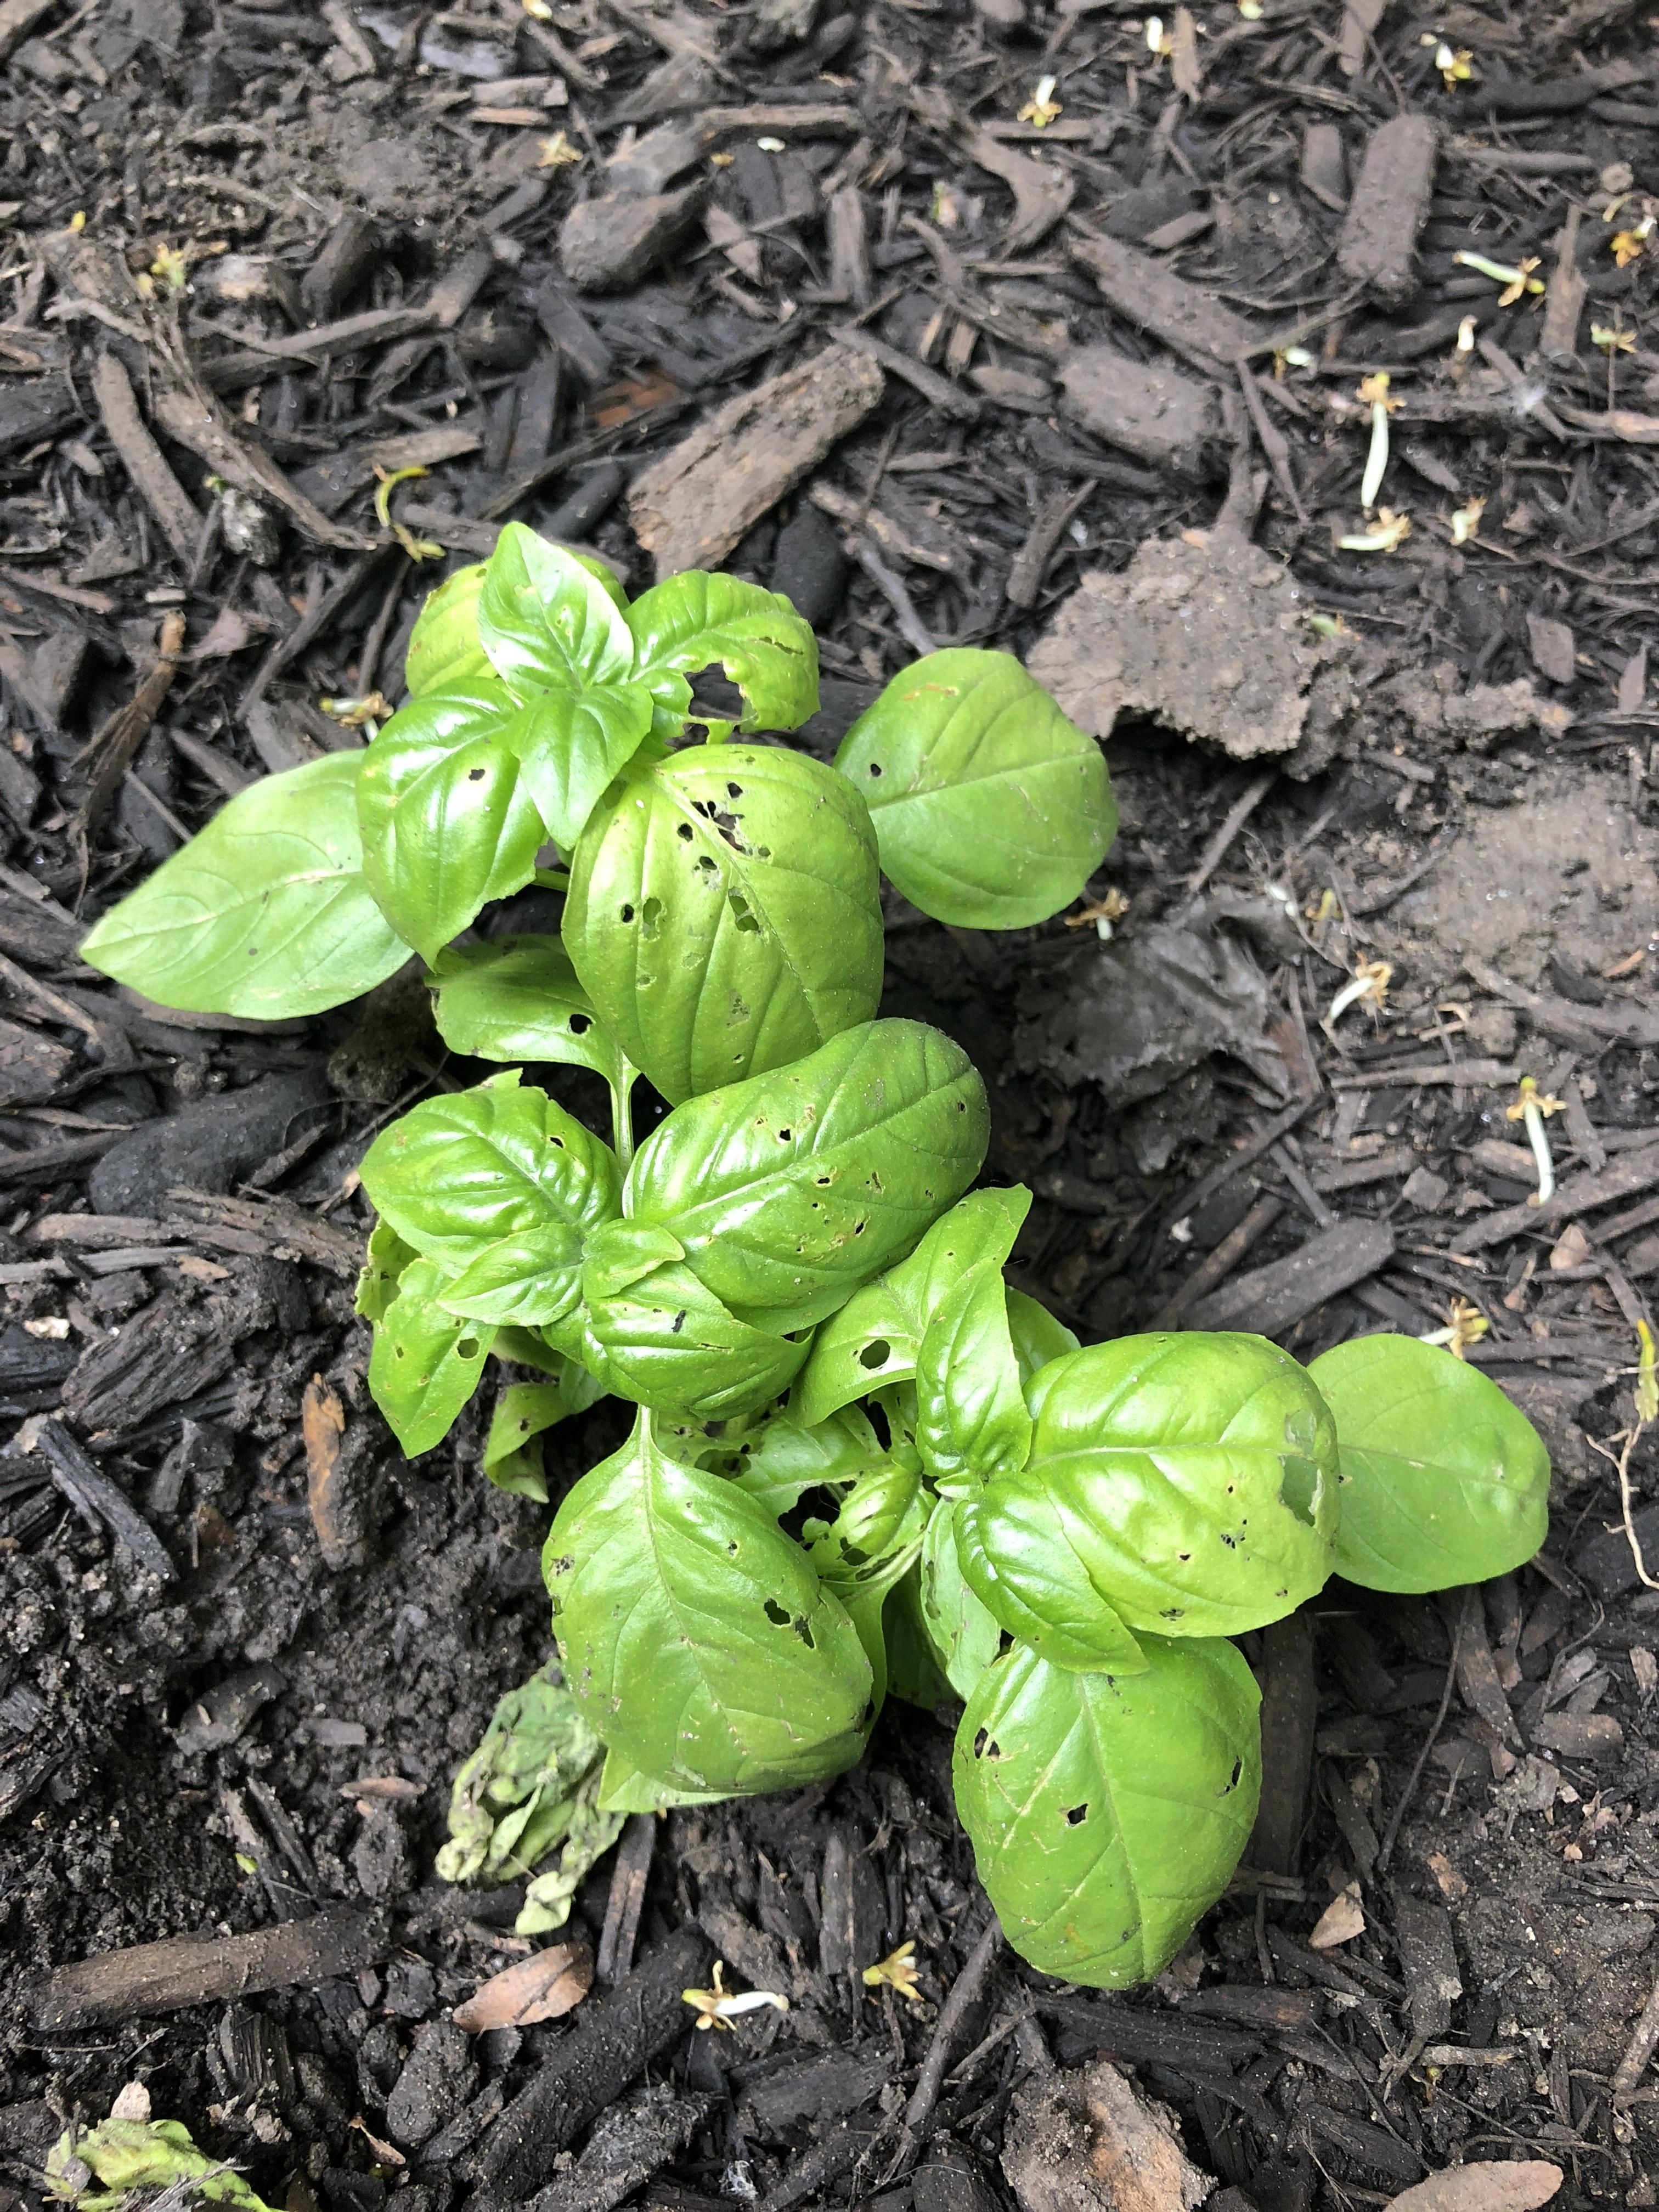 How To Stop Bugs Eating My Basil Gardening Garden Diy Home Flowers Roses Nature Landscaping Horticulture Basil Eat Horticulture